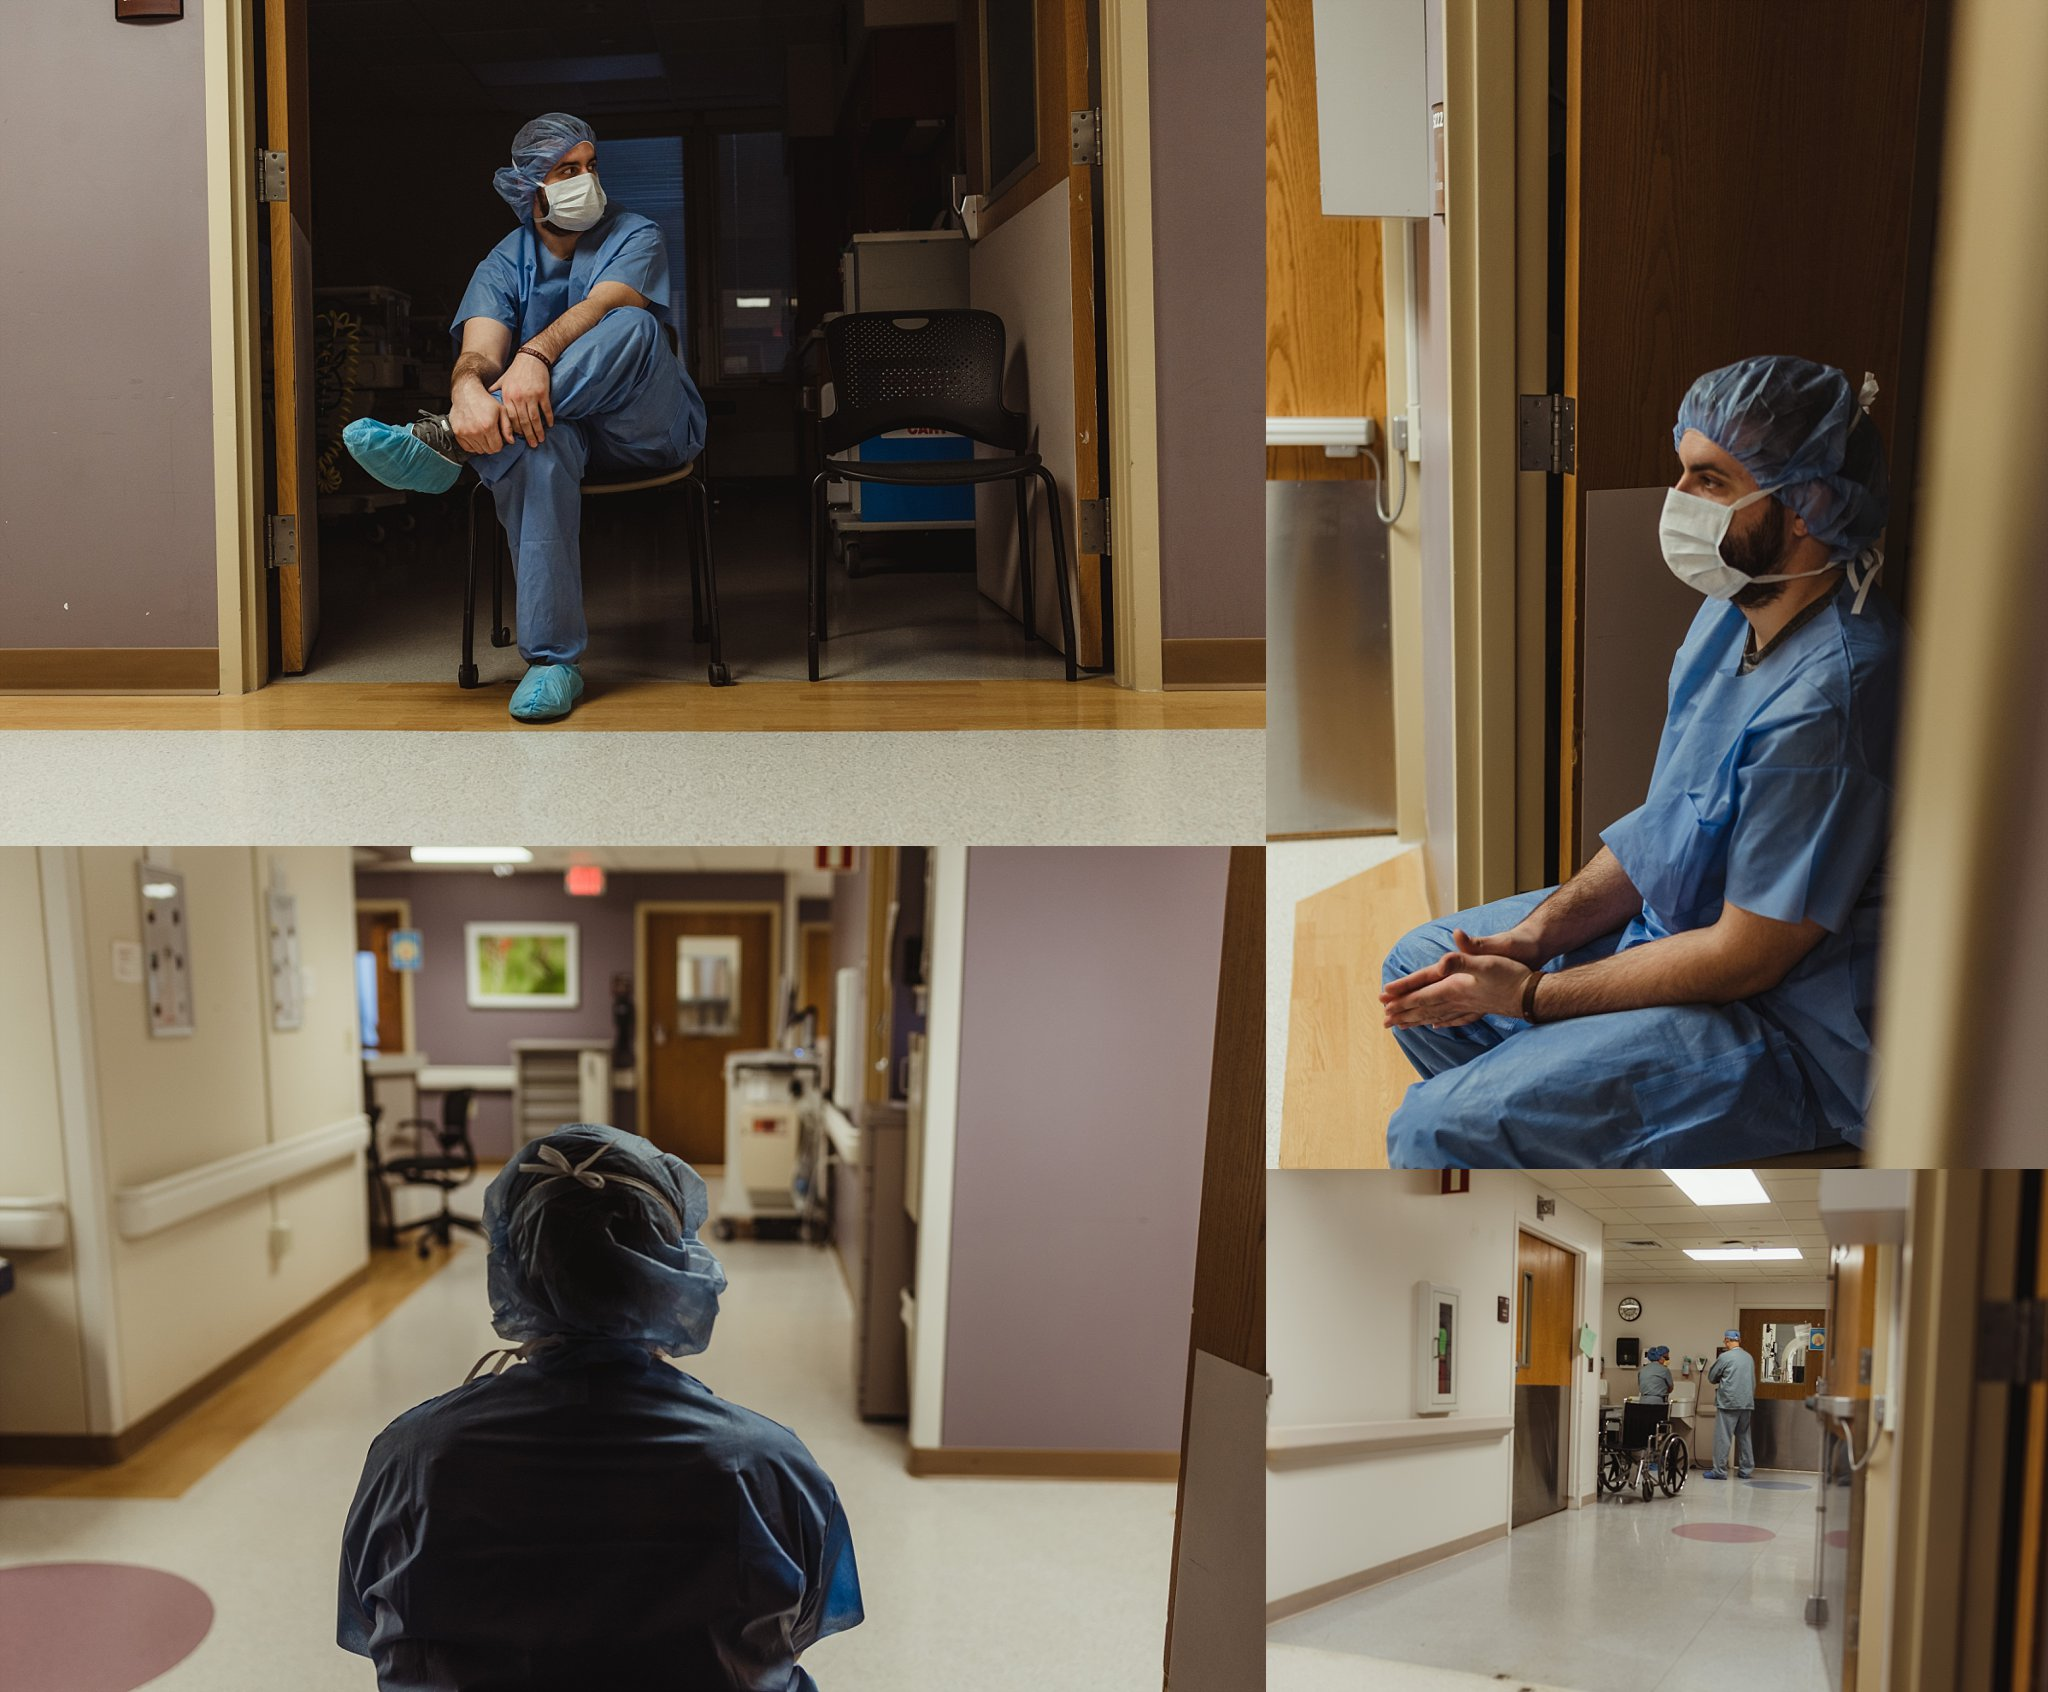 Dad waits outside OR as mom prepares for birth.